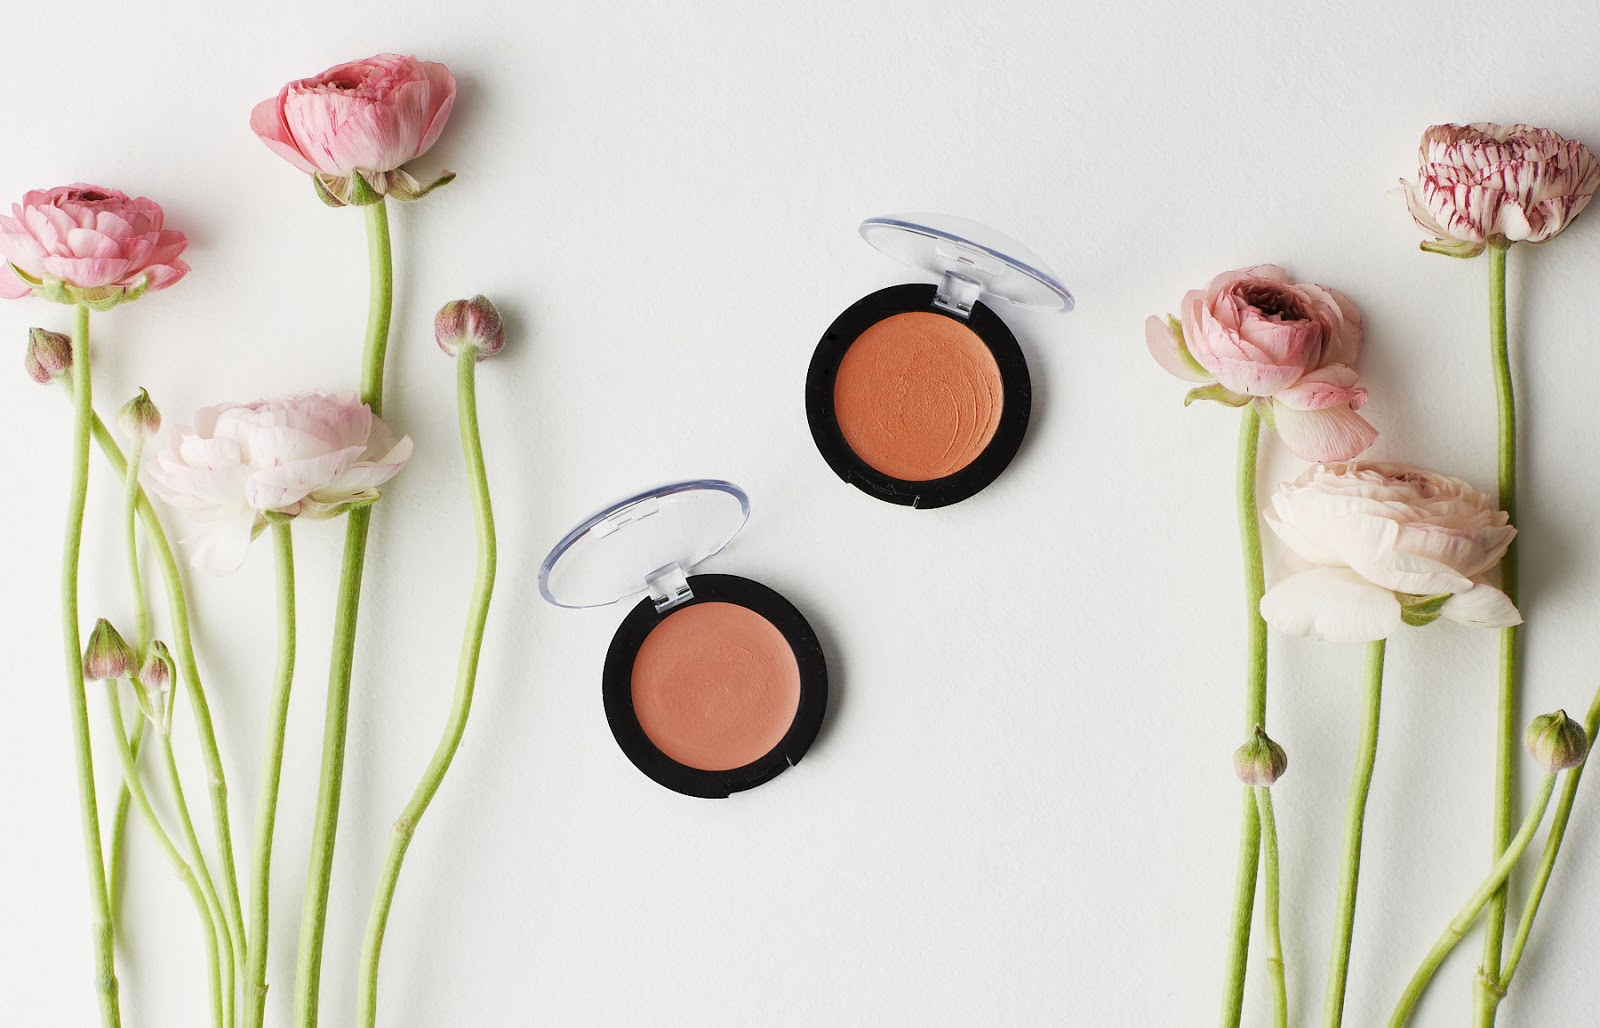 The All Natural Face Vegan Matte Cream Blush Review nontoxic organic makeup hellolindasau